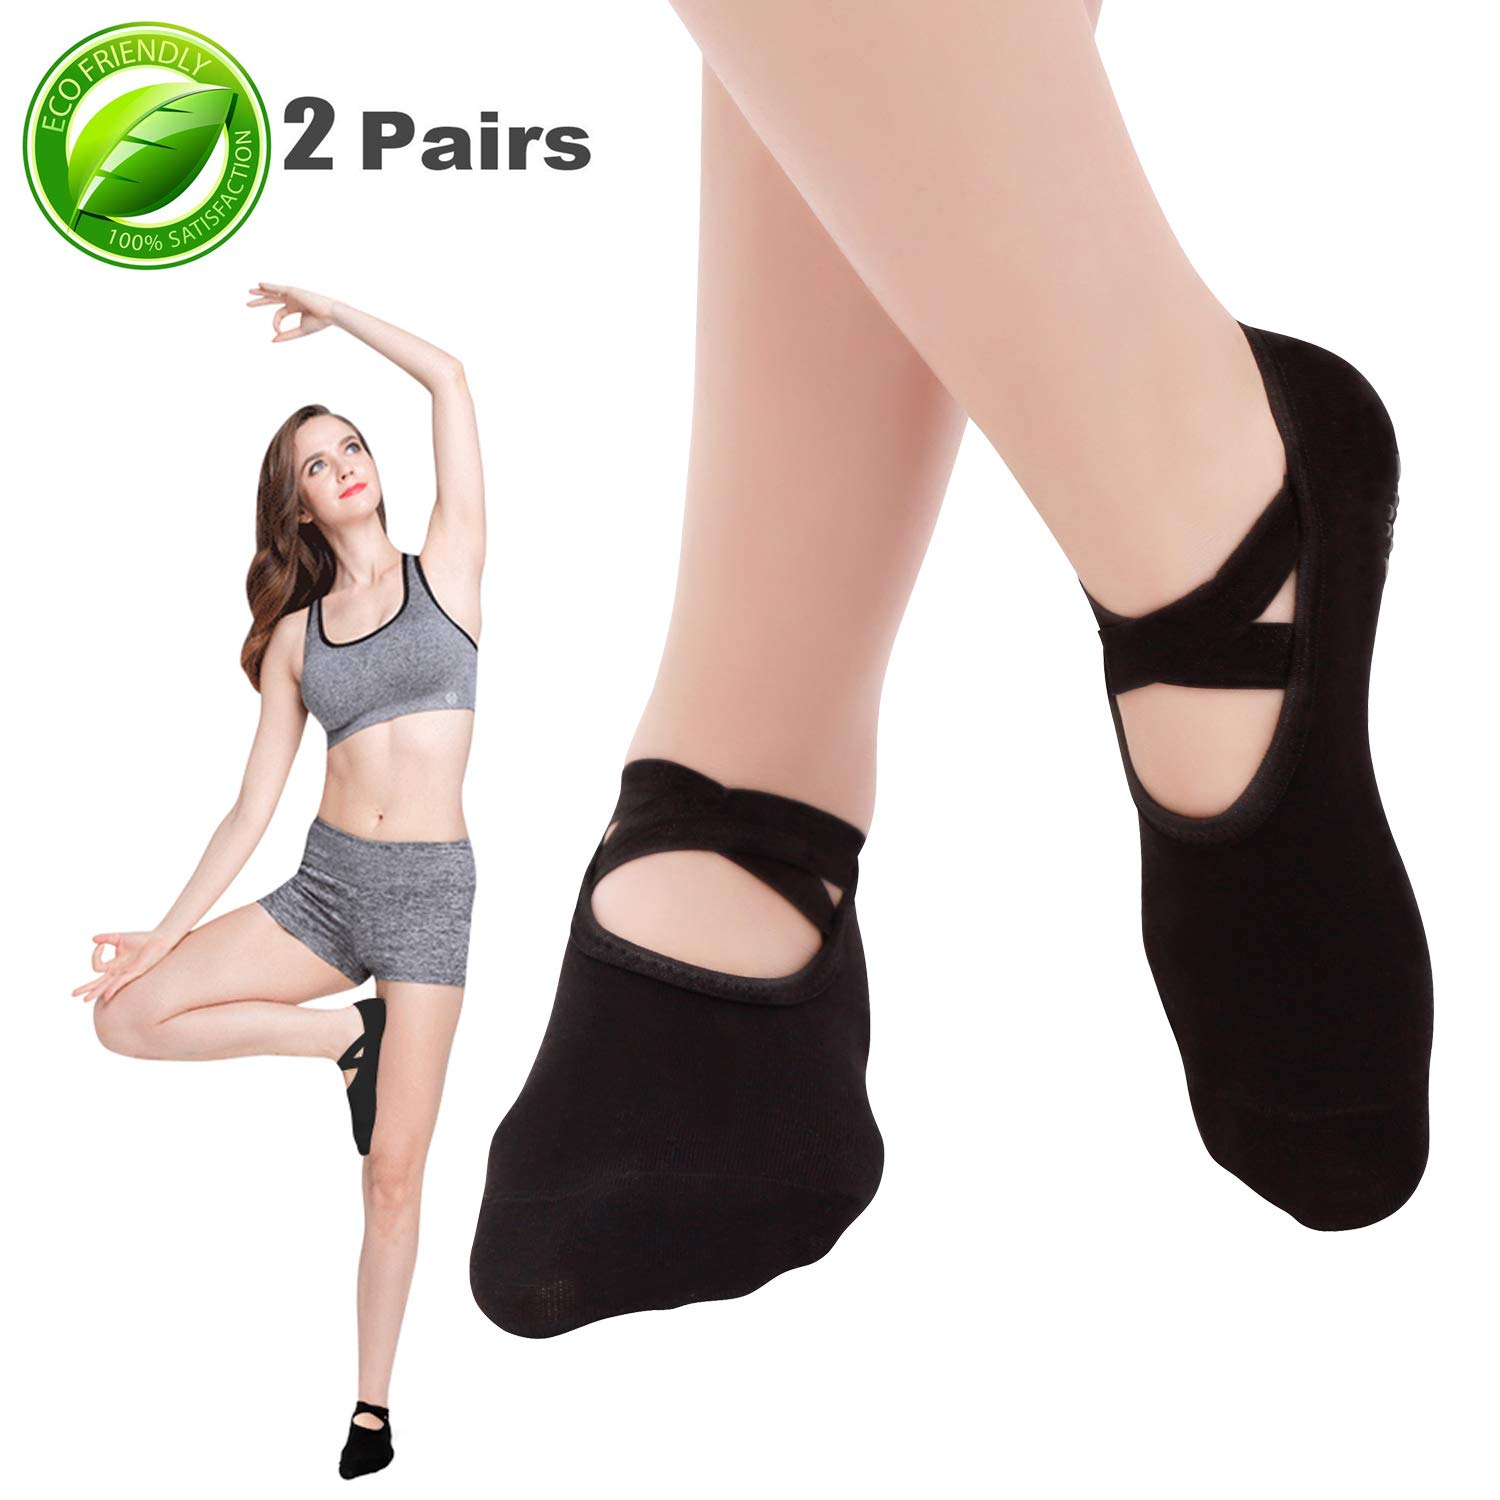 ca89c68a1e ❤【Prevent Fungal Infection & Maintain Personal Hygiene】Have you ever  worried about a bacterial infection when you practice yoga in public studio? Wear our ...